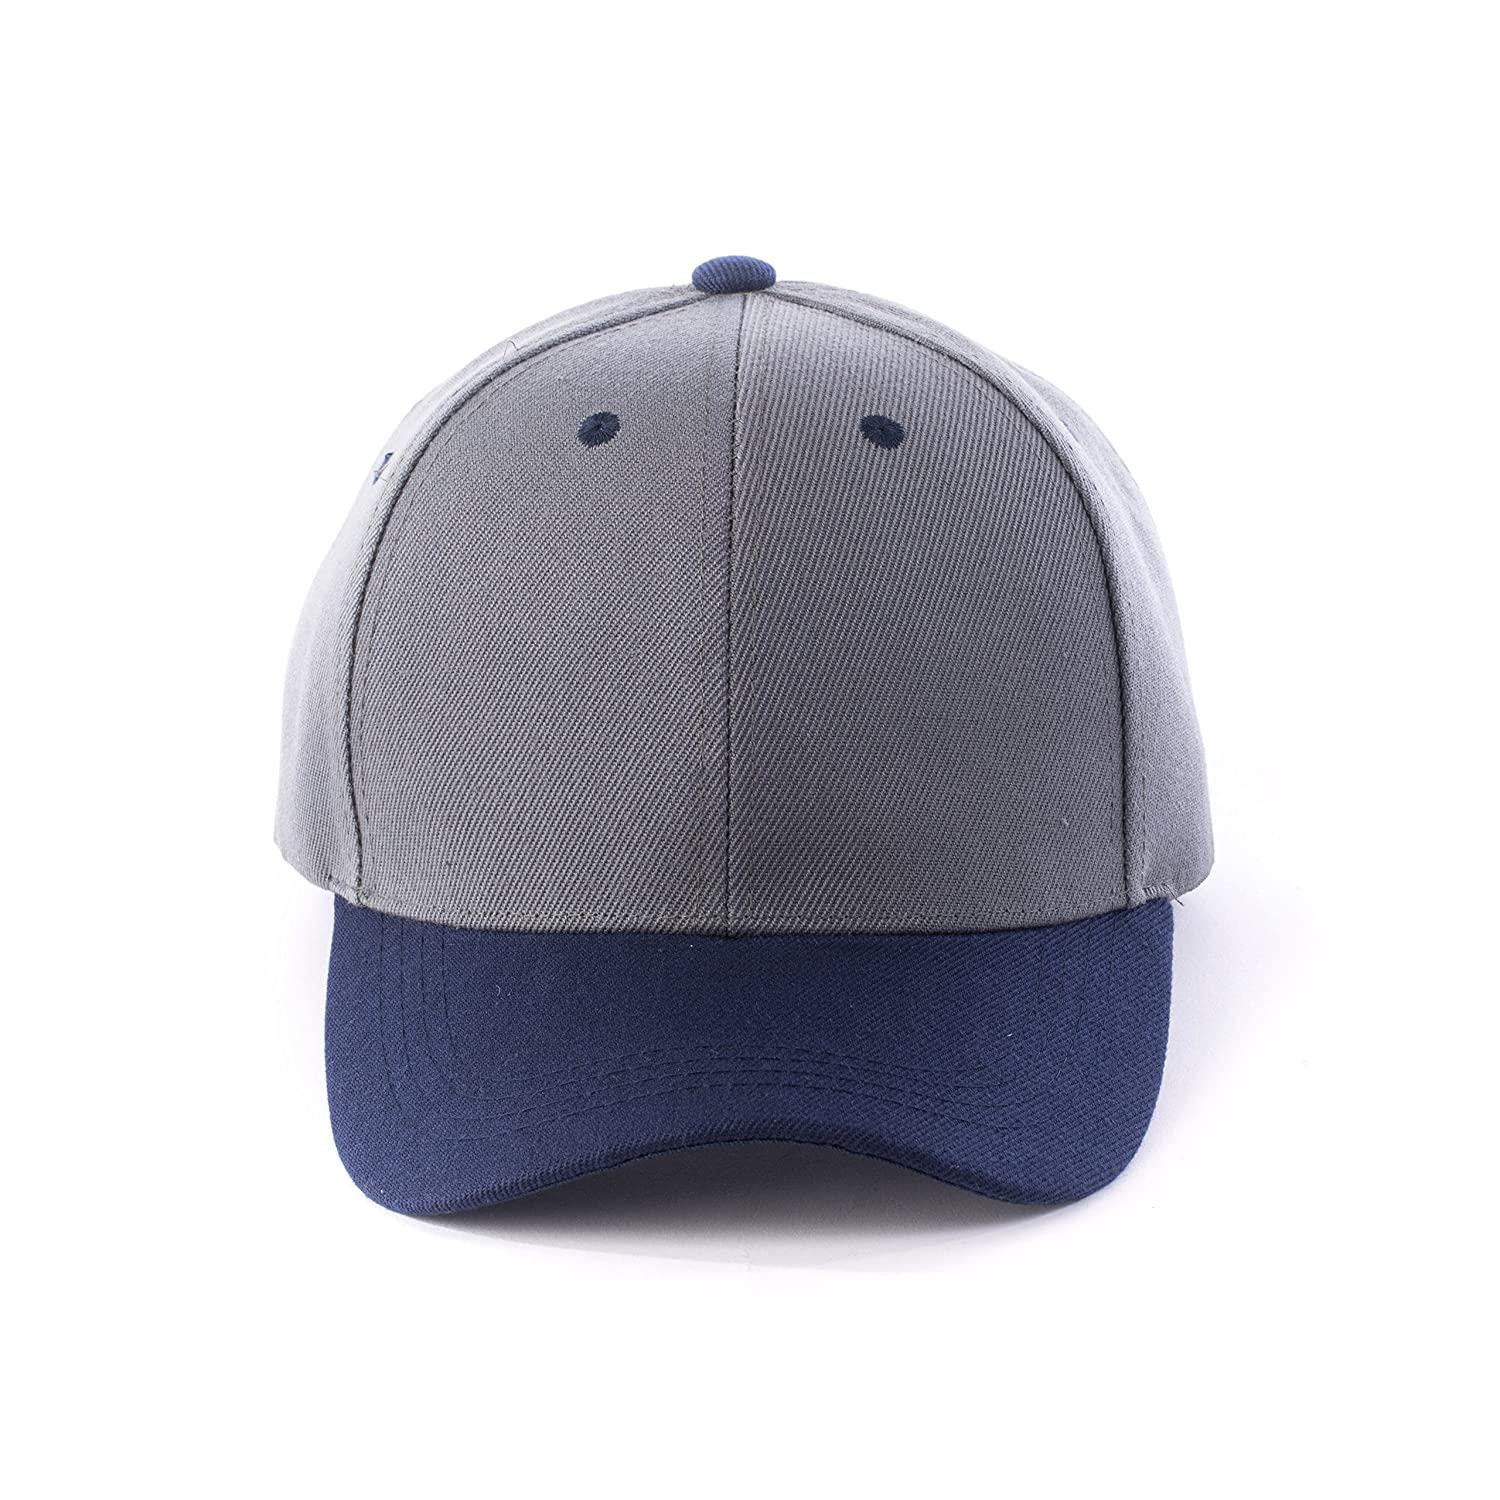 JNTOP HAT メンズ B074RCY7TL S|Charcoal/Navy Charcoal/Navy S